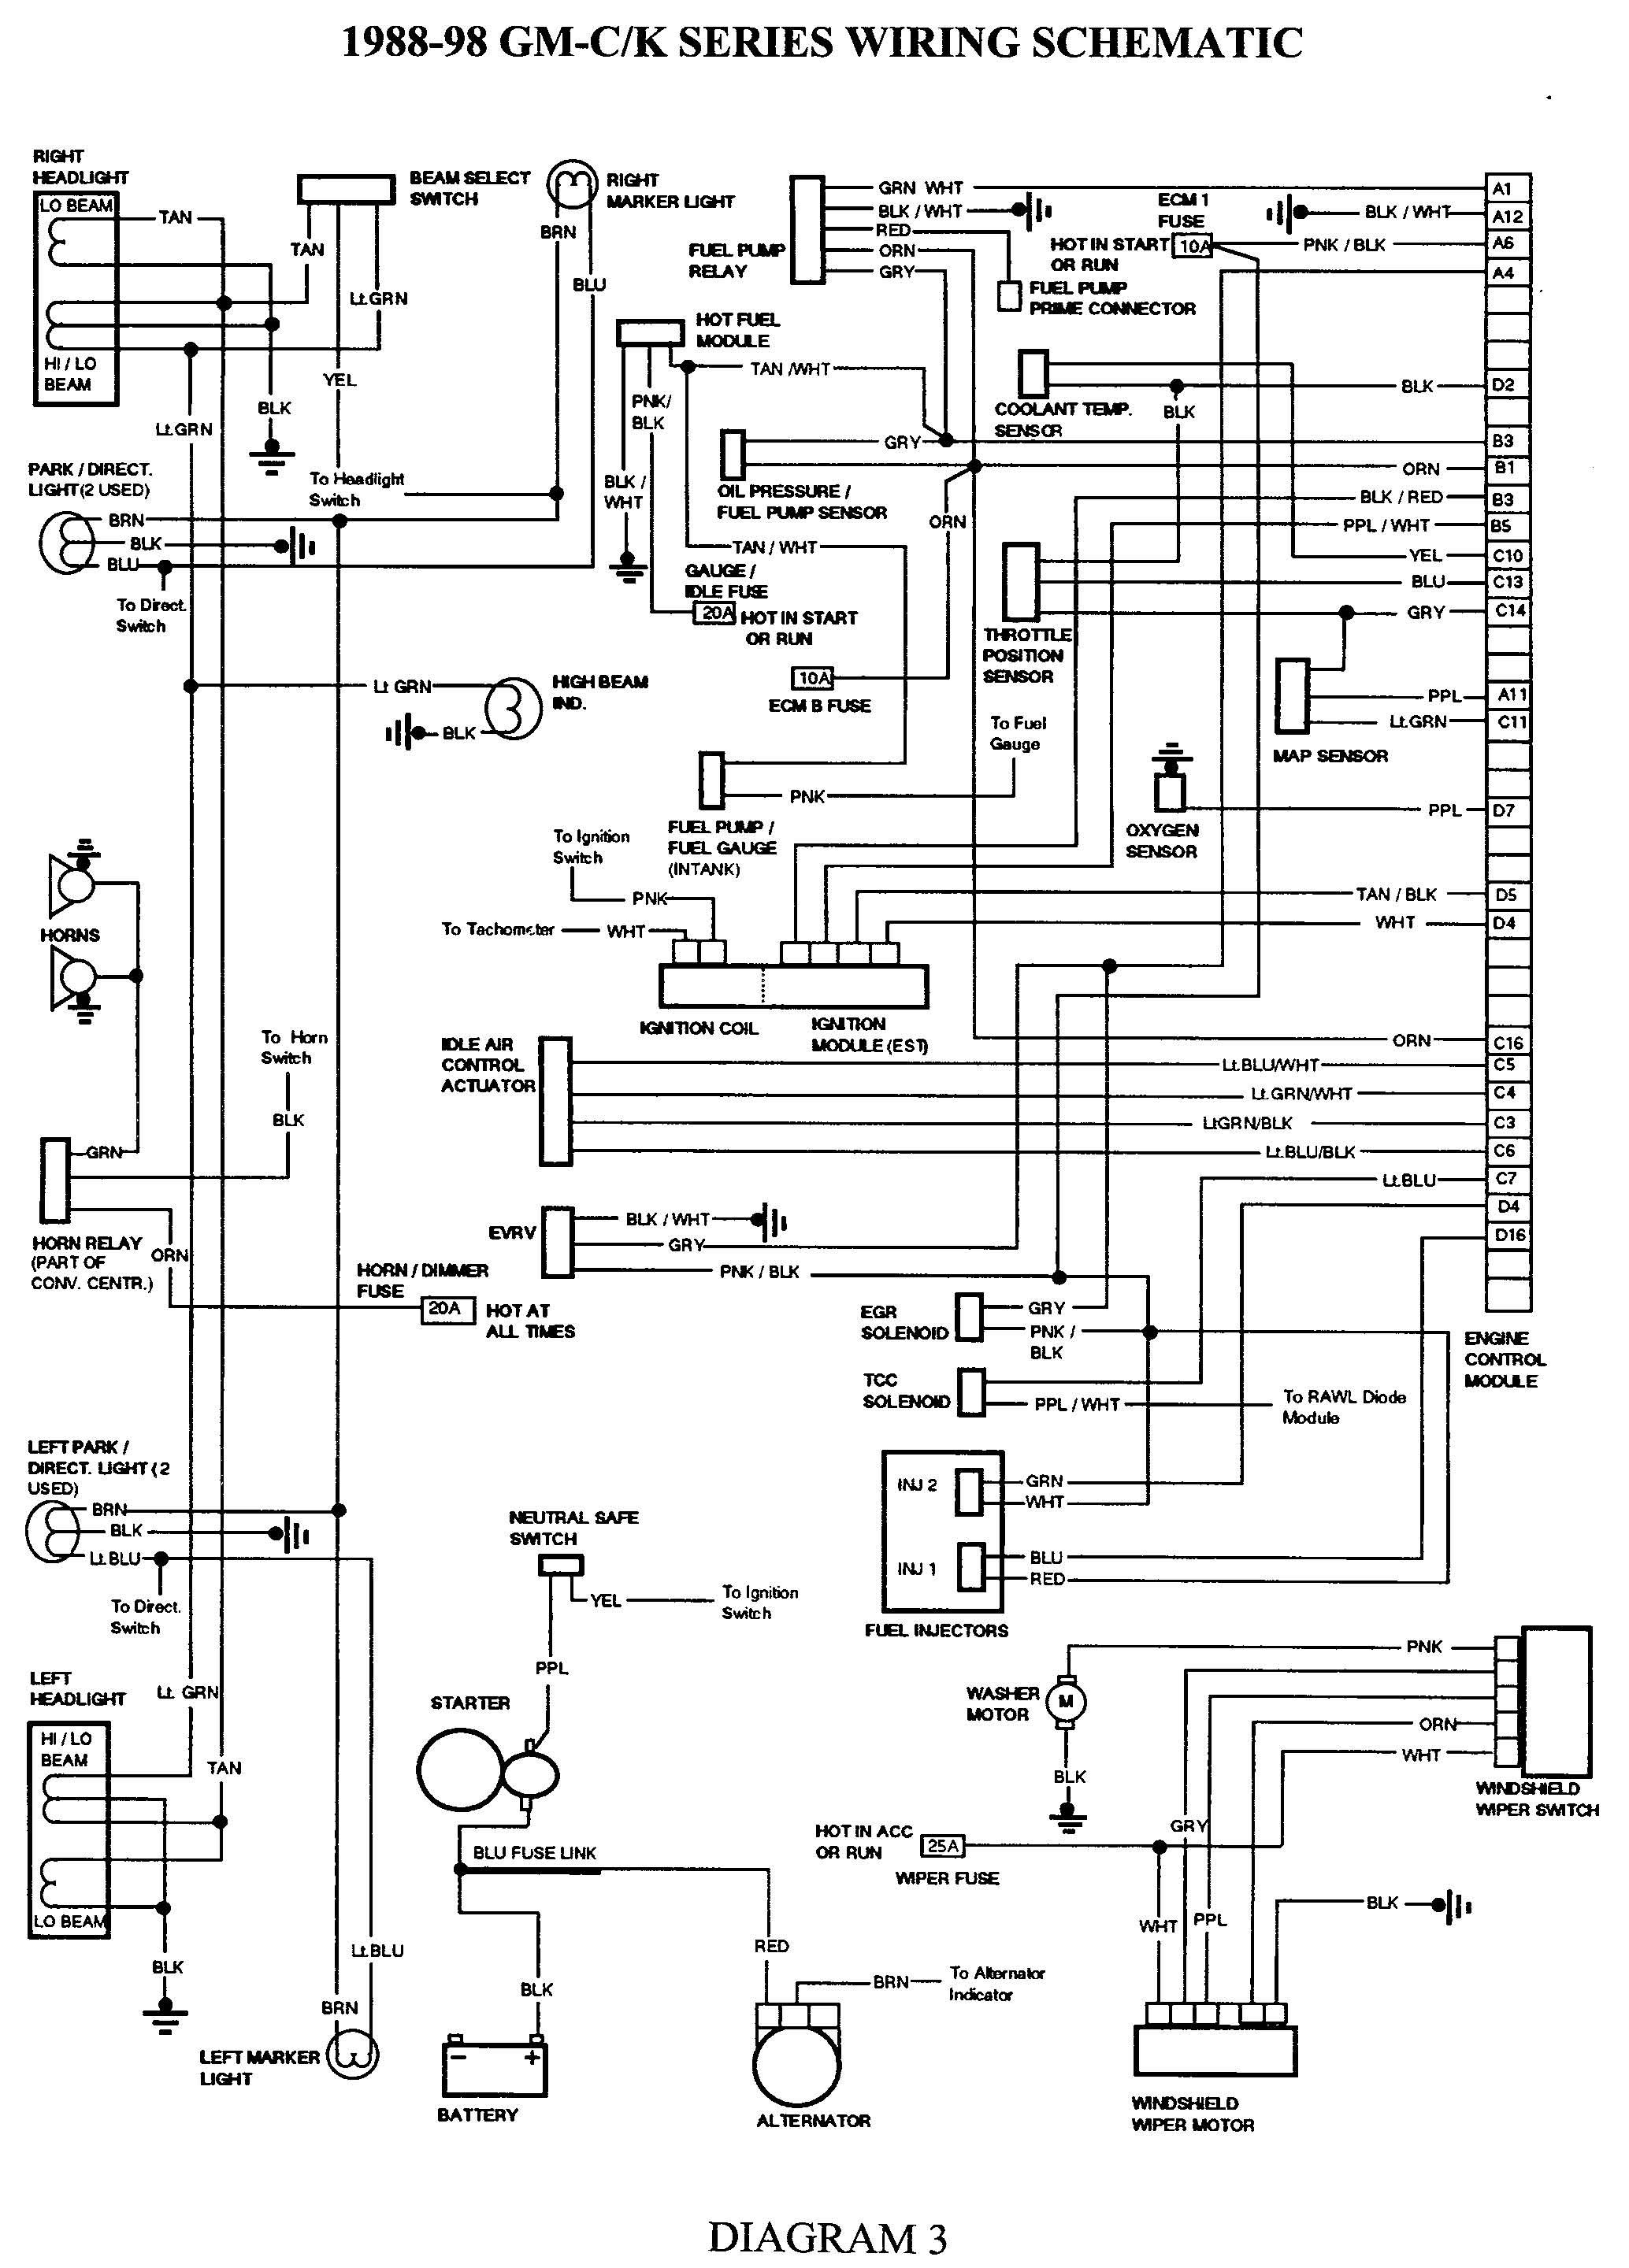 b2f2e5dbdc07dada83ef514f6d4ce3d4 gmc truck wiring diagrams on gm wiring harness diagram 88 98 kc simple chevy tbi wiring harness diagram at mifinder.co